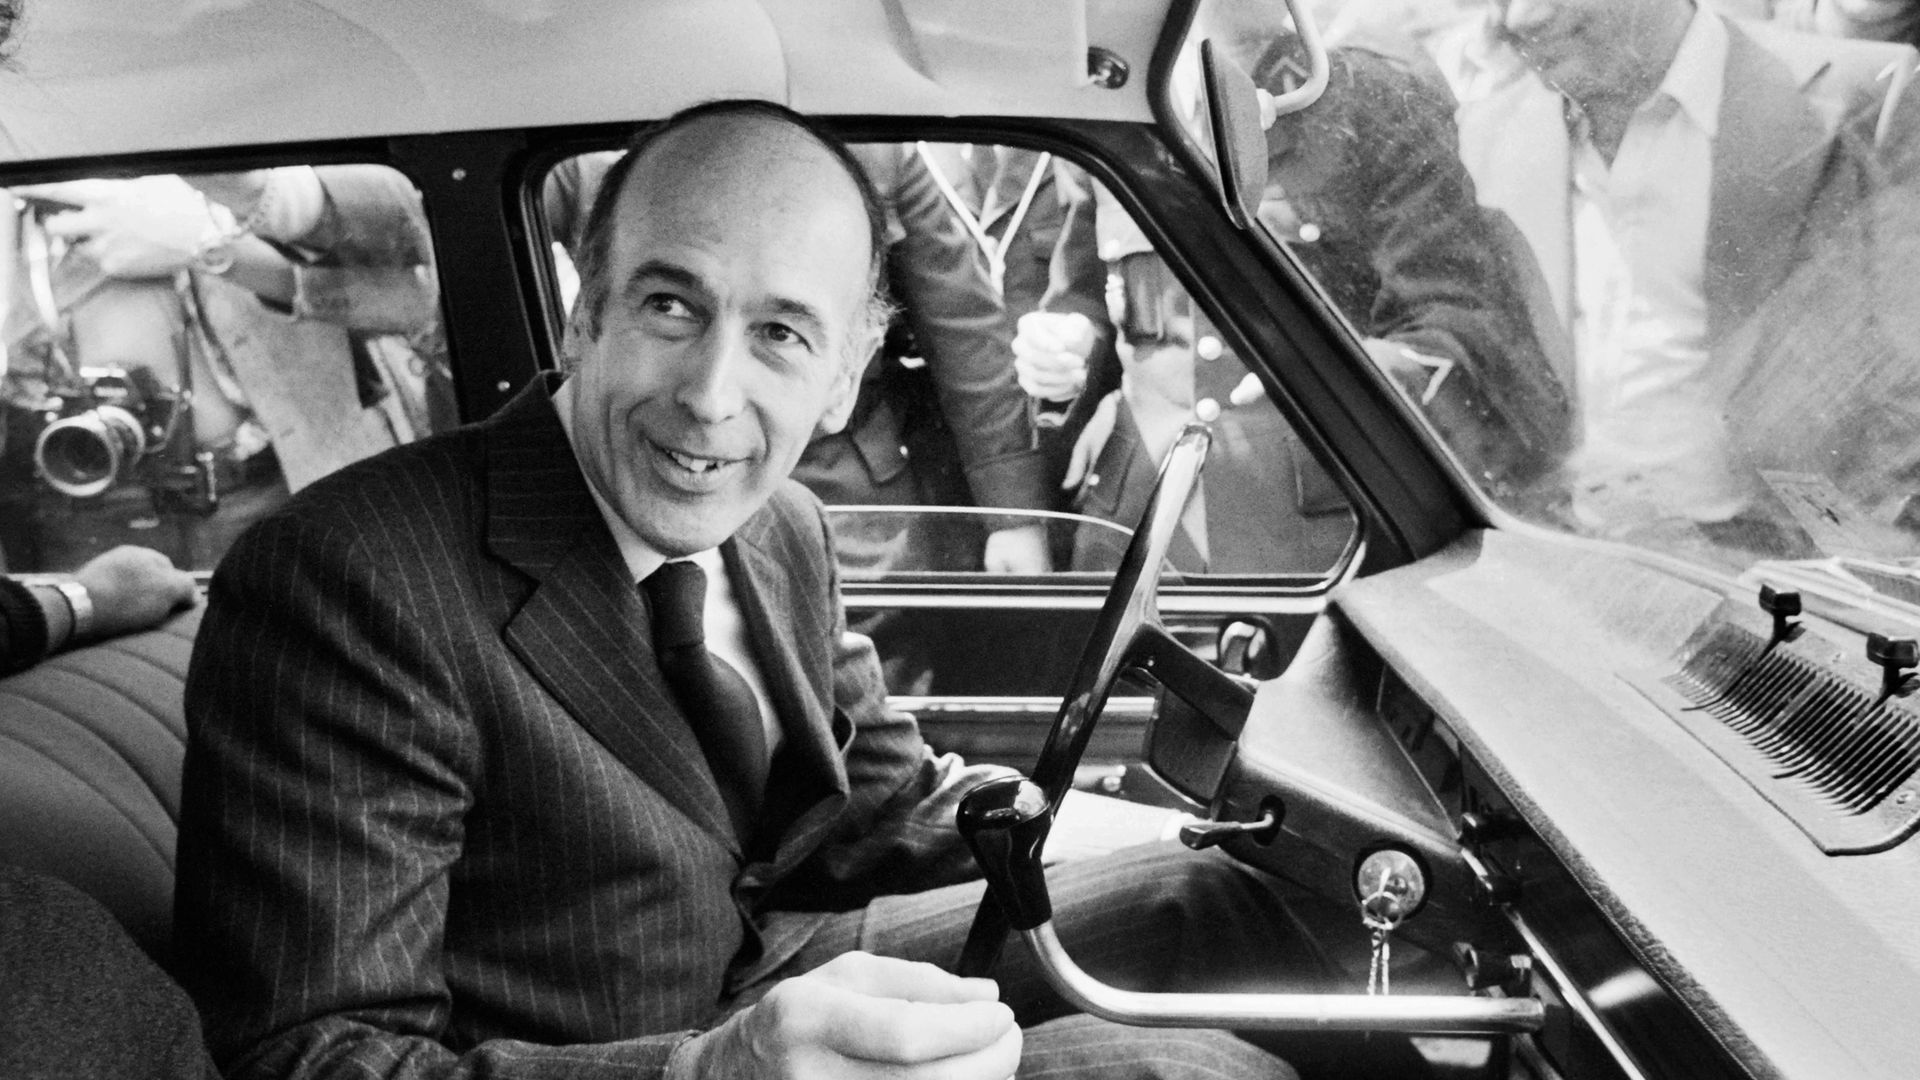 Valery Giscard d'Estaing in his car after voting in the second round of the 1974 presidential election, which he won - Credit: AFP via Getty Images